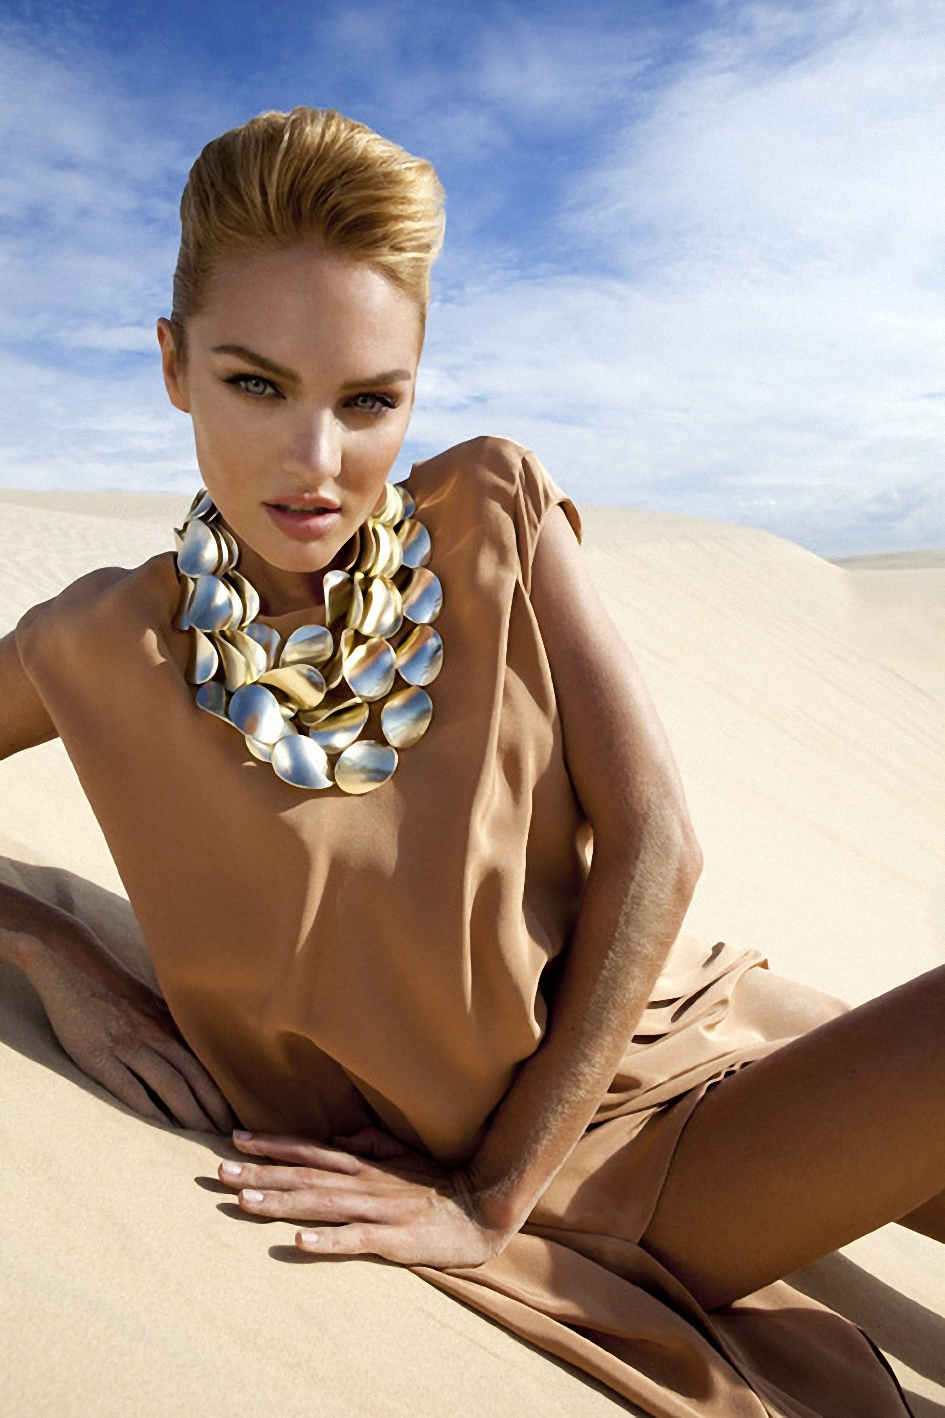 CANDICE SWANEPOEL on the Set of a Photoshooting for Vogue